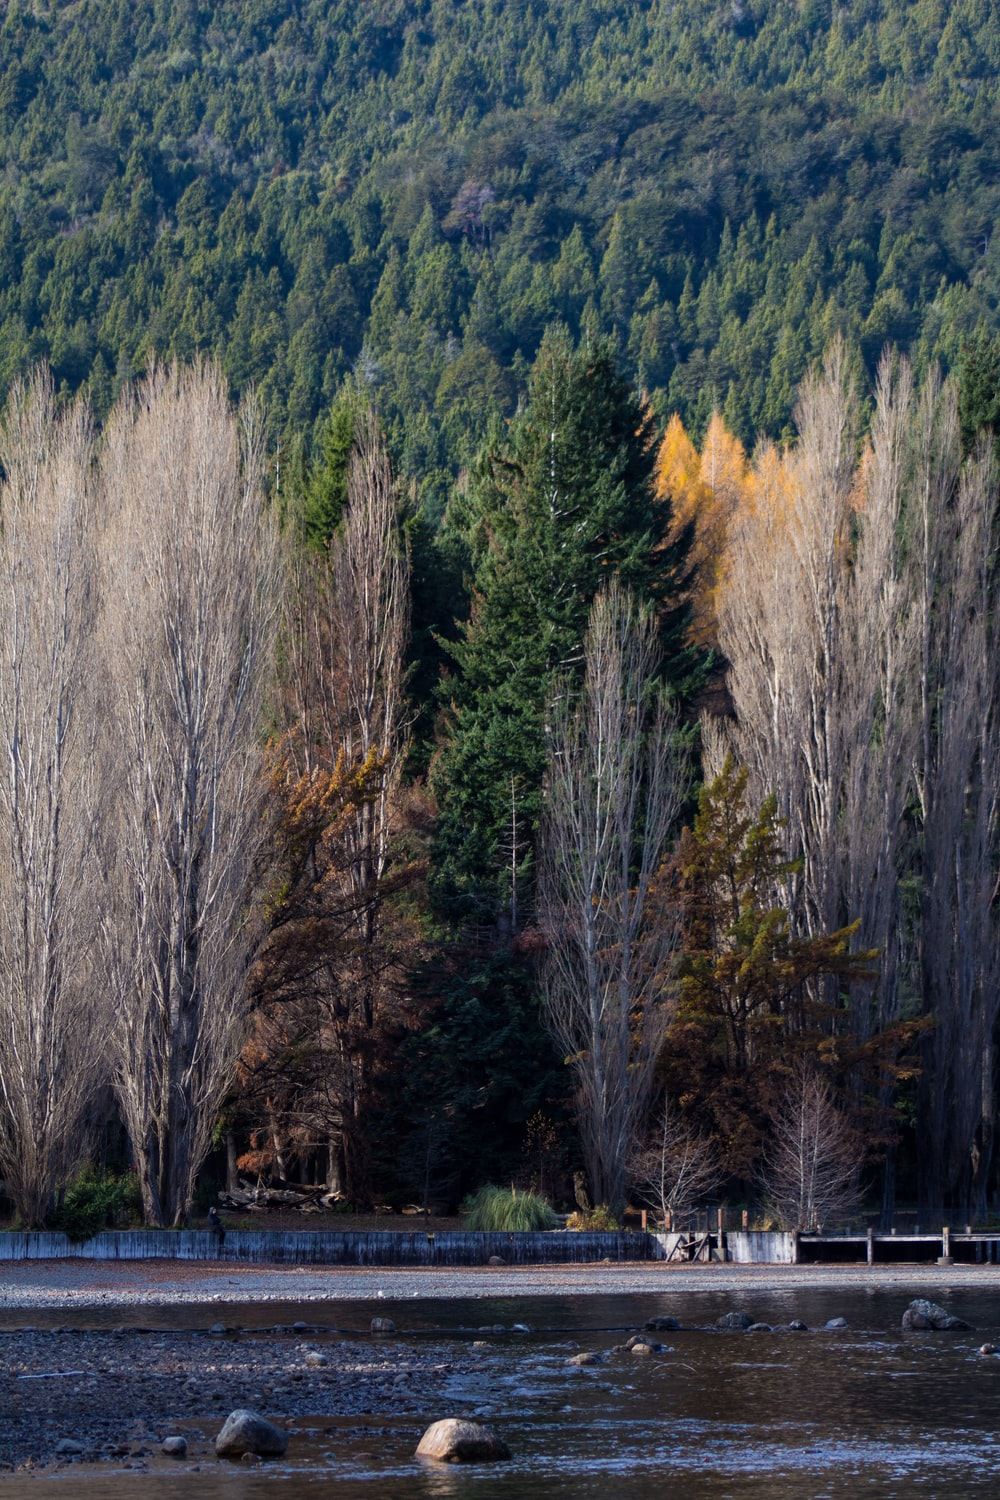 lined pine trees near body of water during daytime